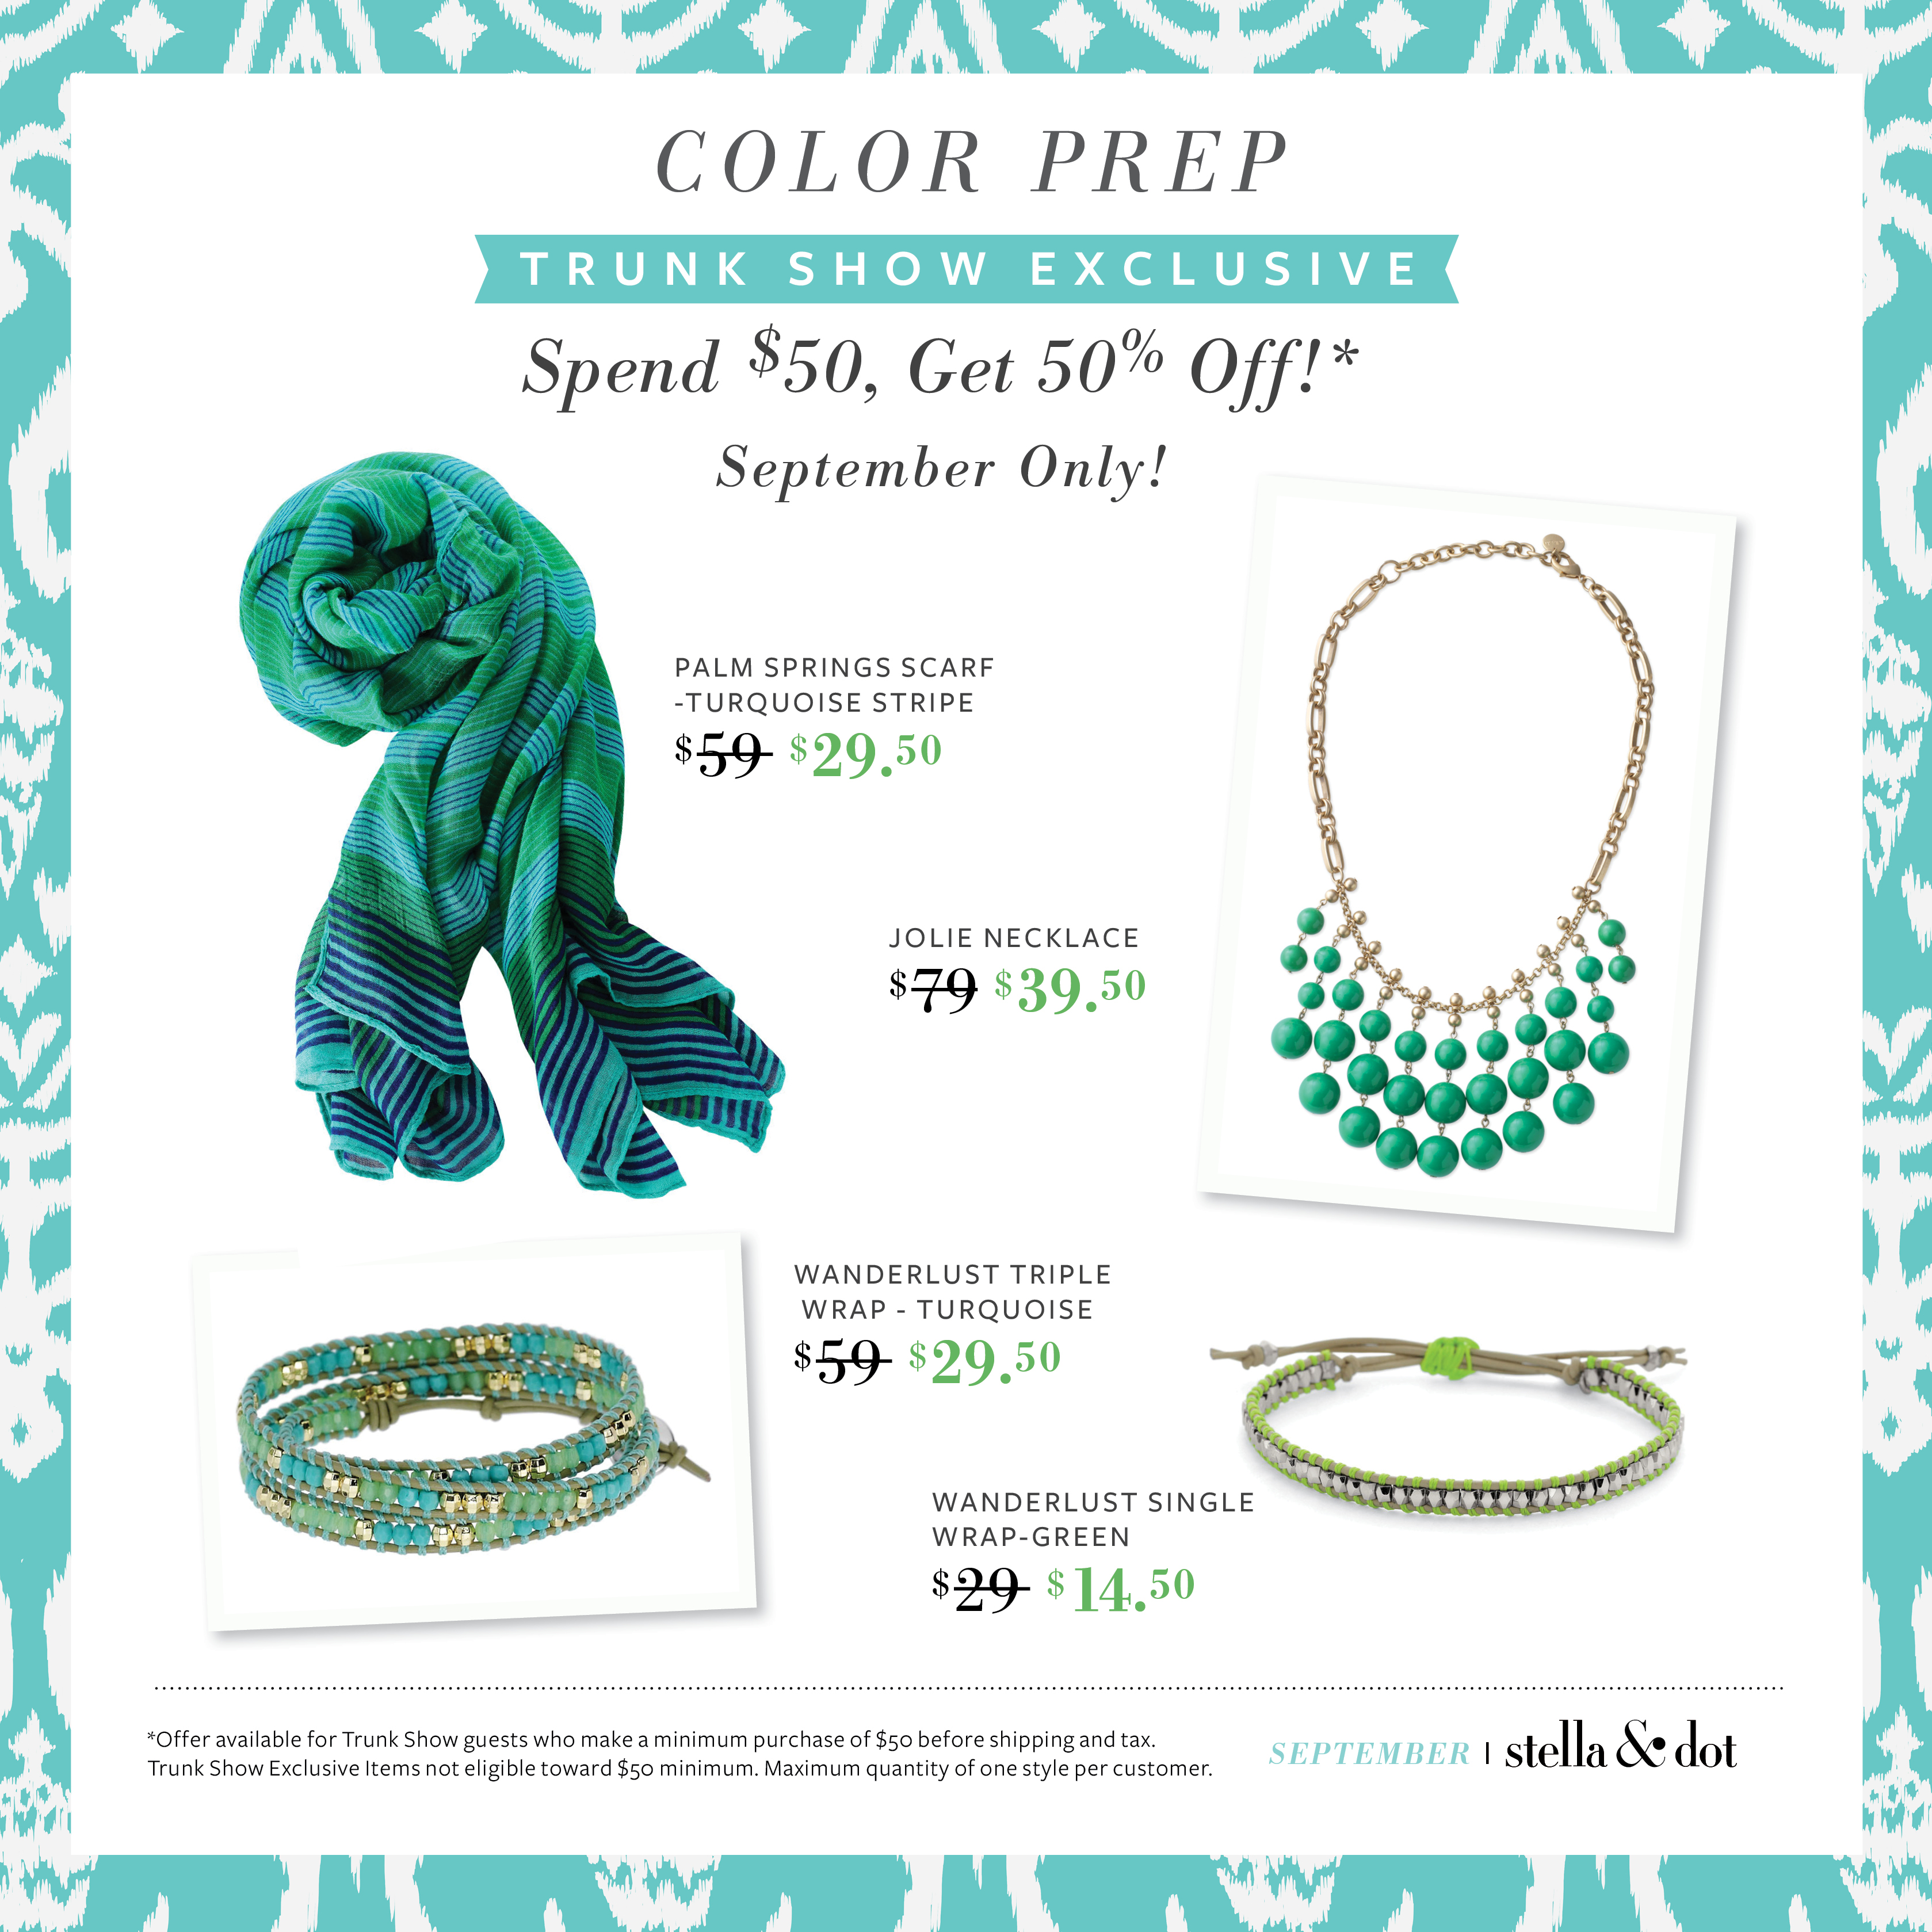 https://i2.wp.com/com.stelladot.stylists.s3.amazonaws.com/images/Lounge%202013/September/Sept_TSE_FB_US.jpg